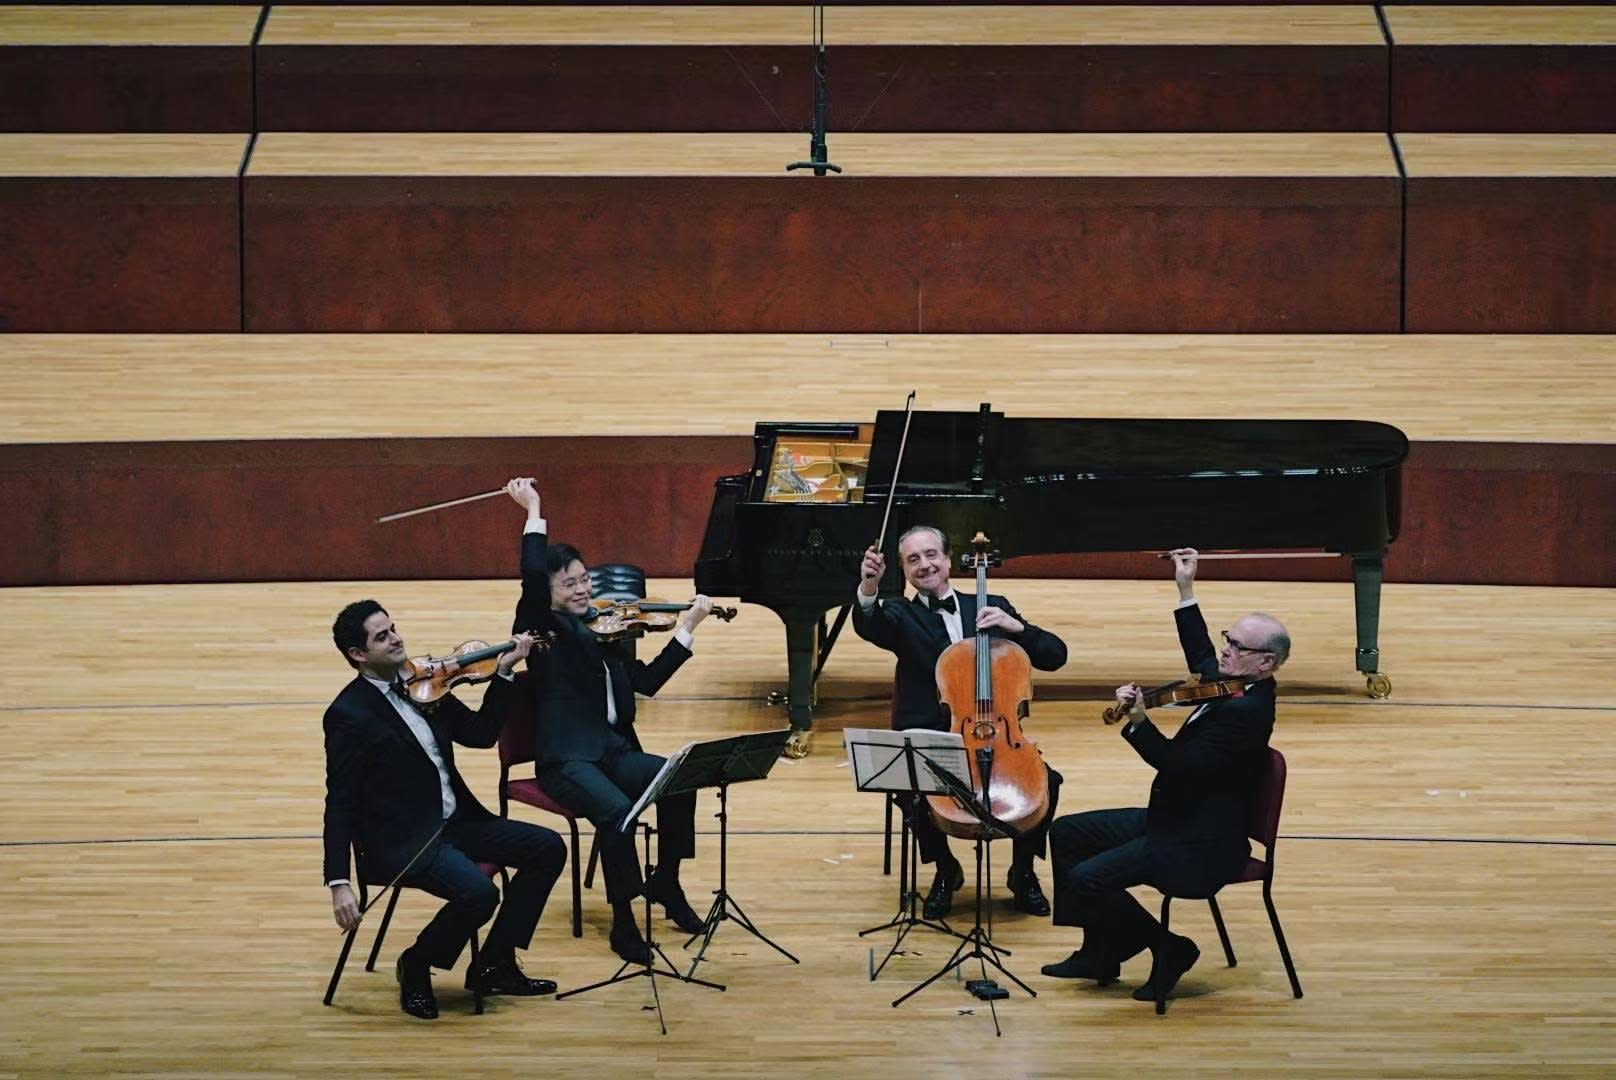 Violinists Arnaud Sussmann and Paul Huang, cellist David Finckel, and violist Paul Neubauer perform at the National Kaohsiung Center for the Arts - Weiwuying.